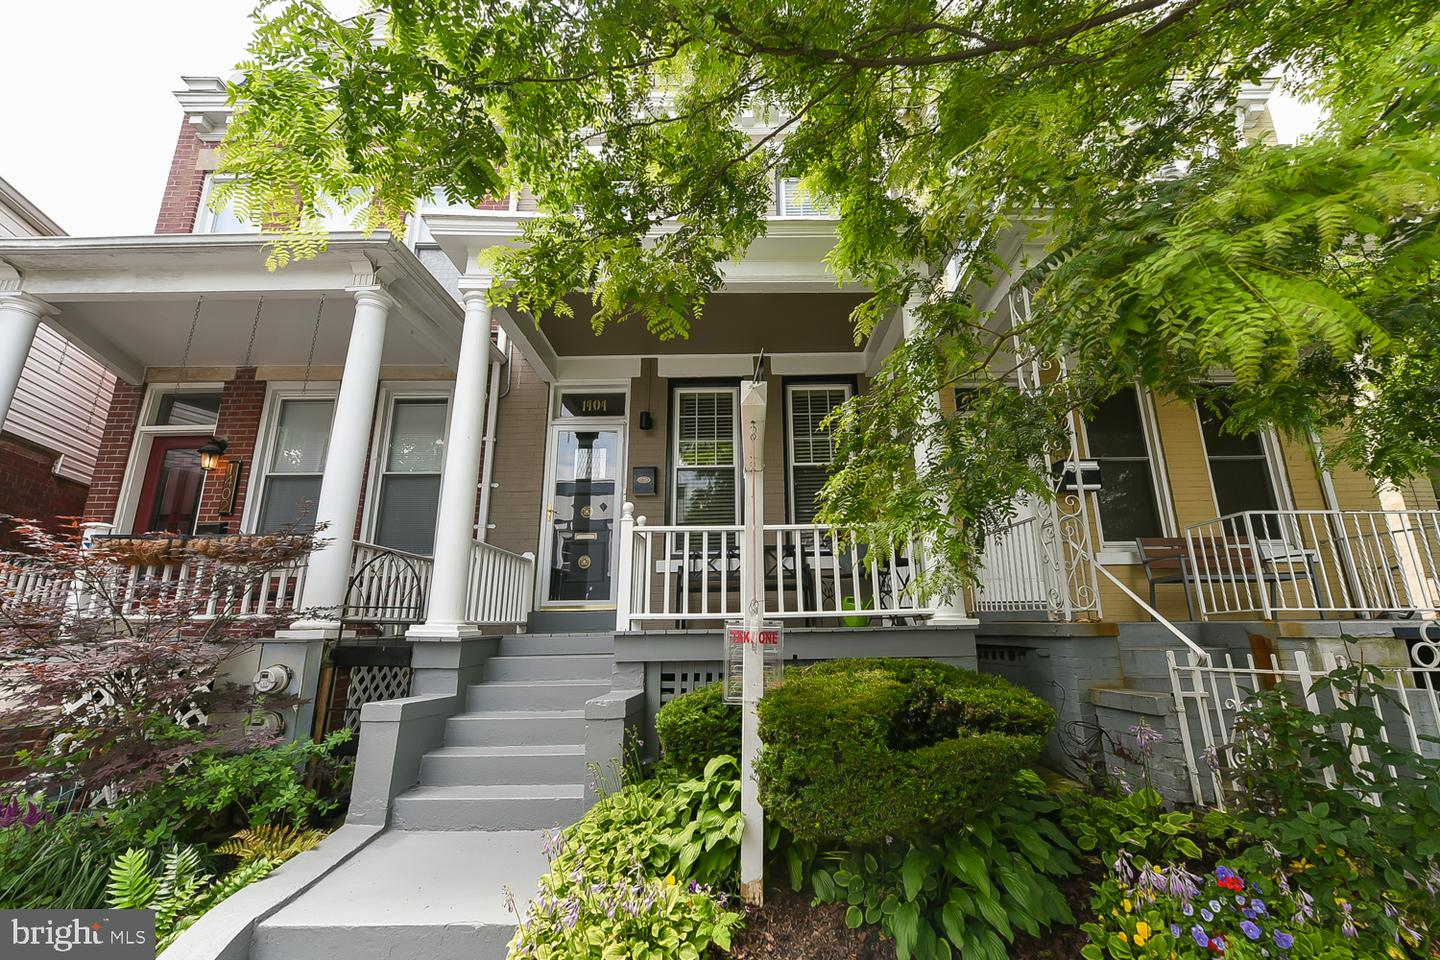 1404 PERRY PLACE NW, WASHINGTON, District of Columbia